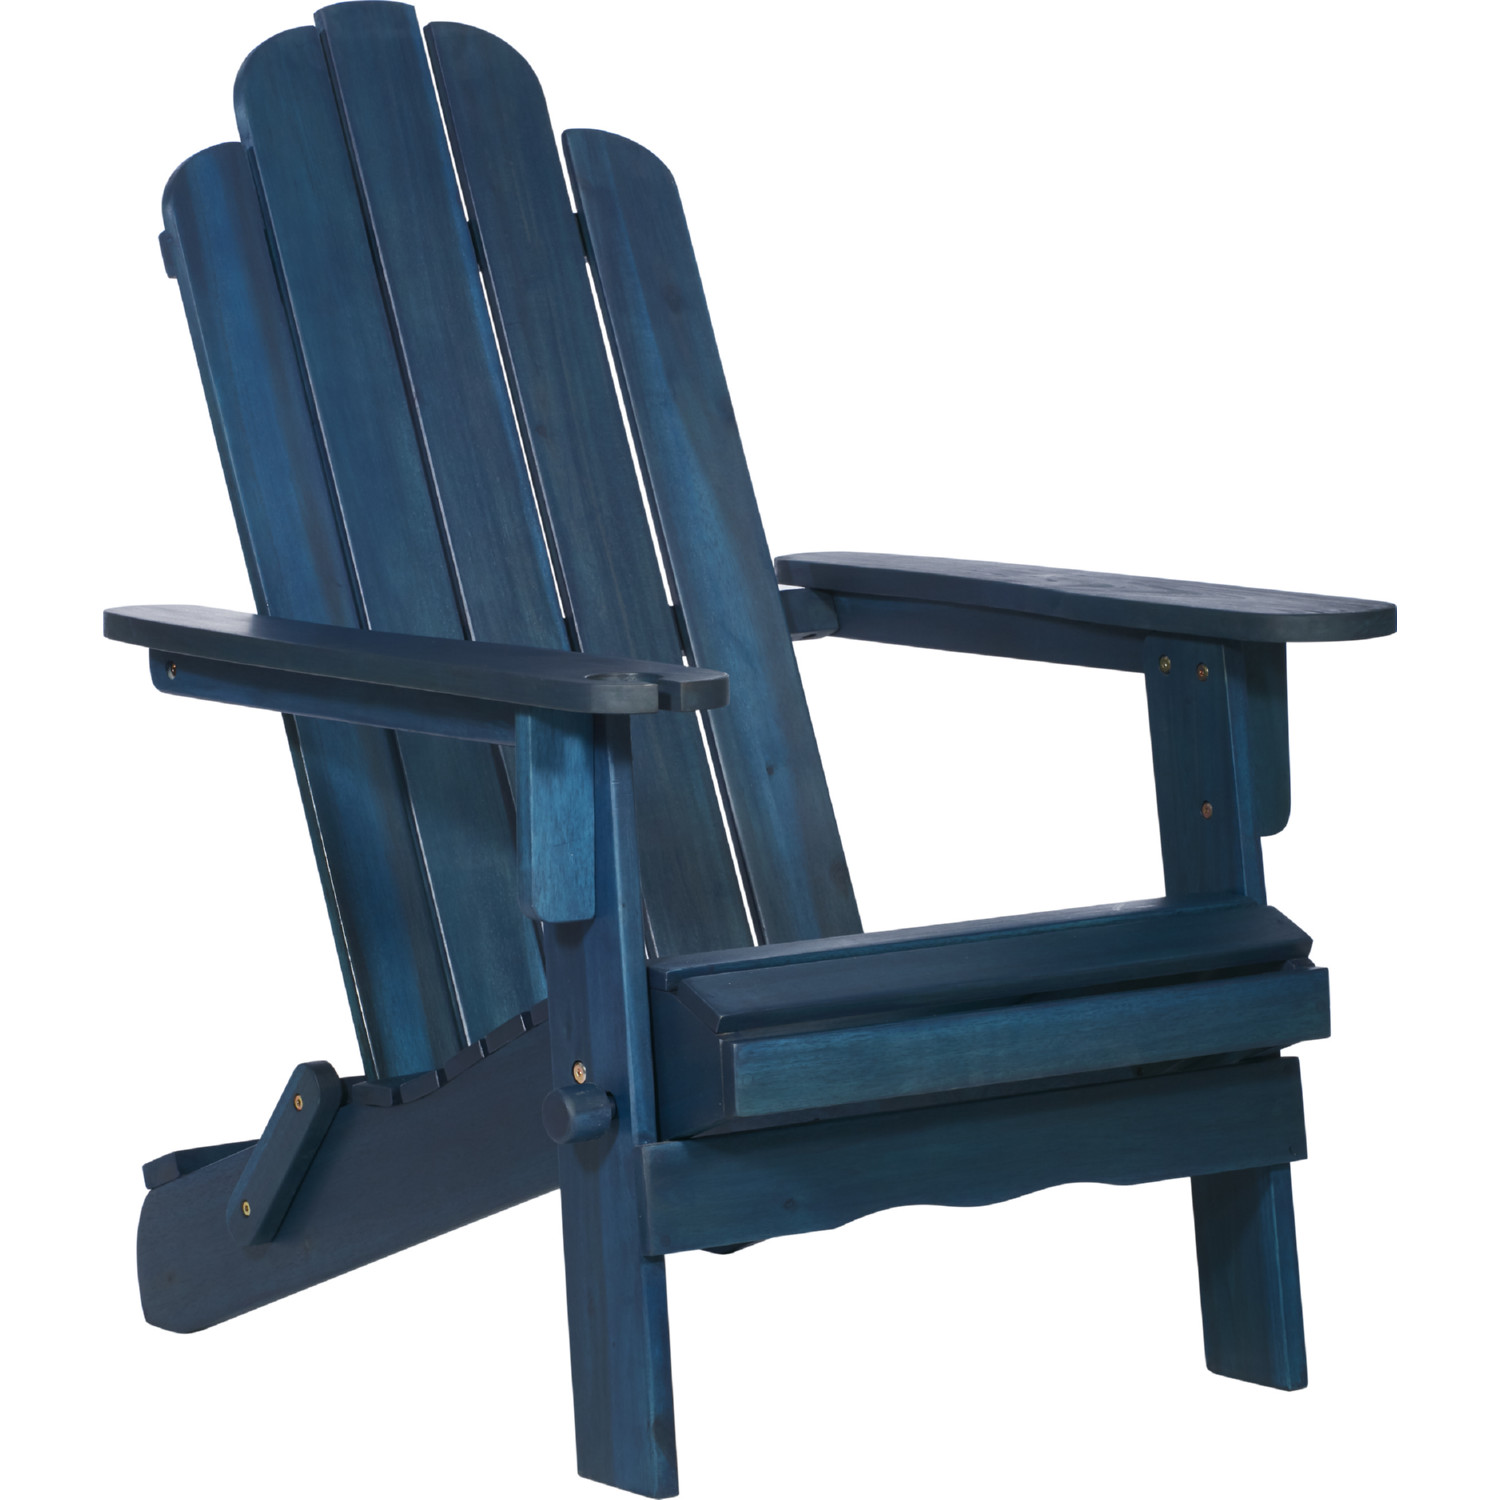 Outdoor Patio Adirondack Chair In Navy Blue Wash Acacia Wood By Walker Edison